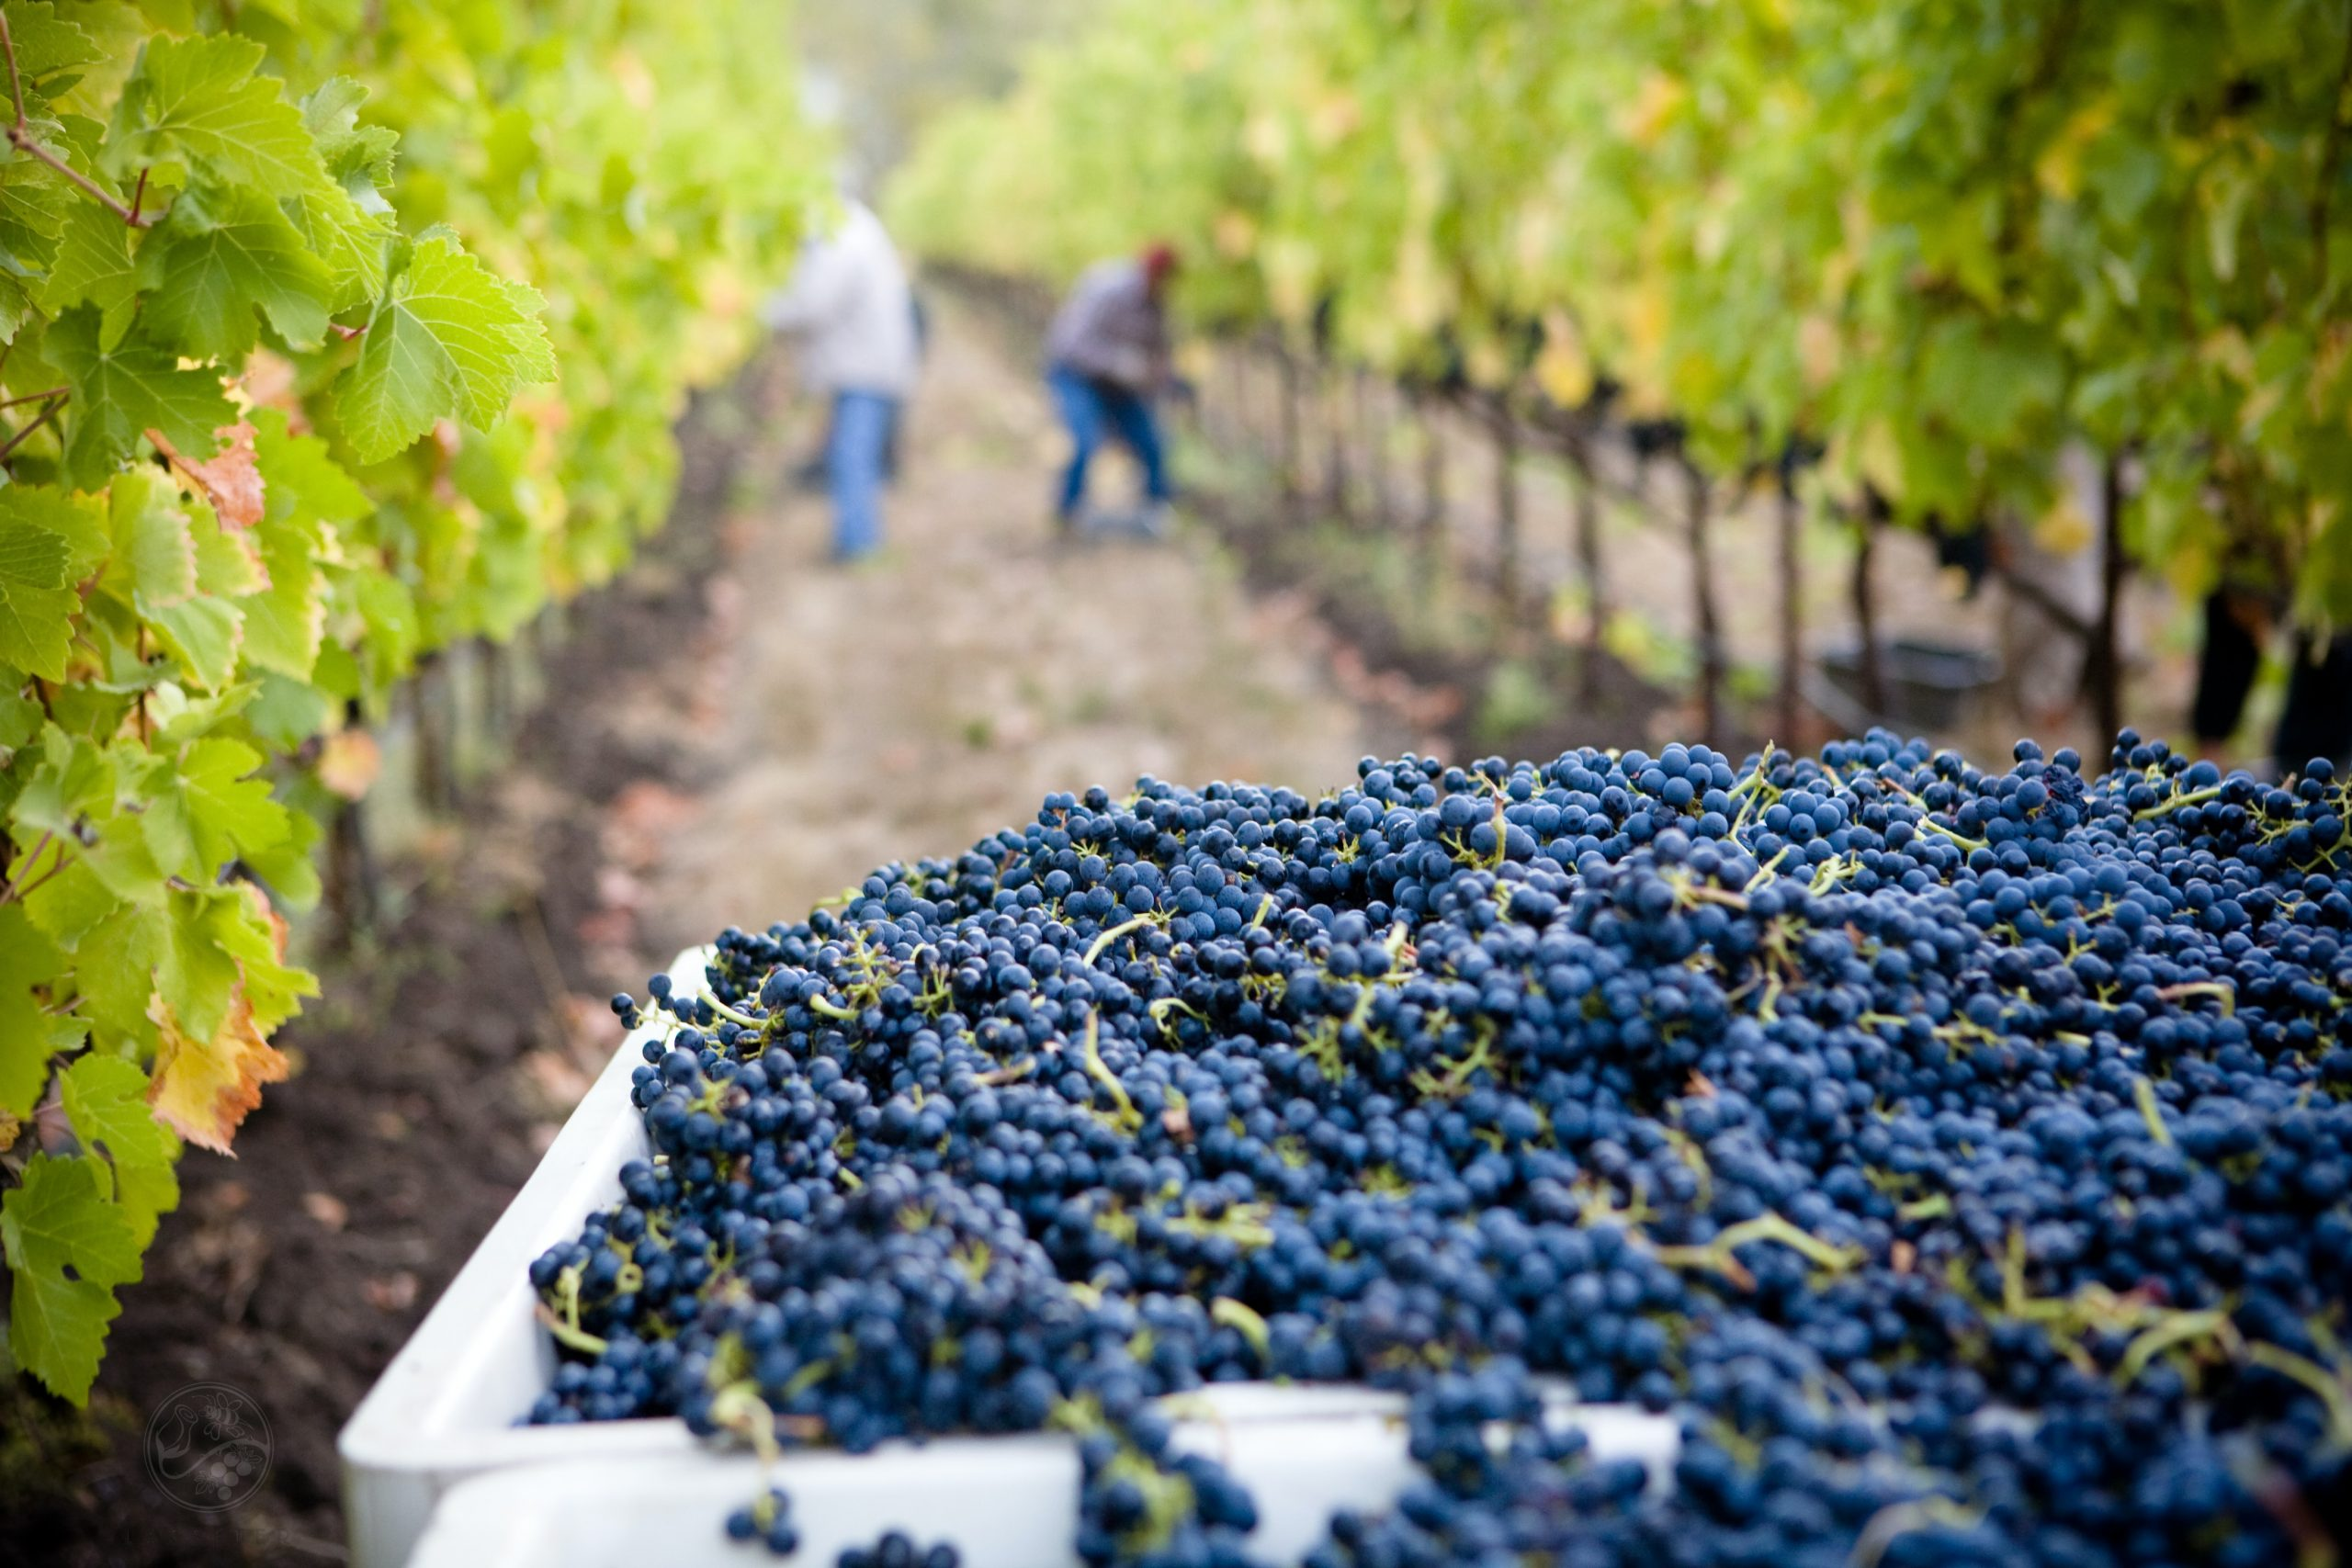 A photo of grapes in a vineyard.